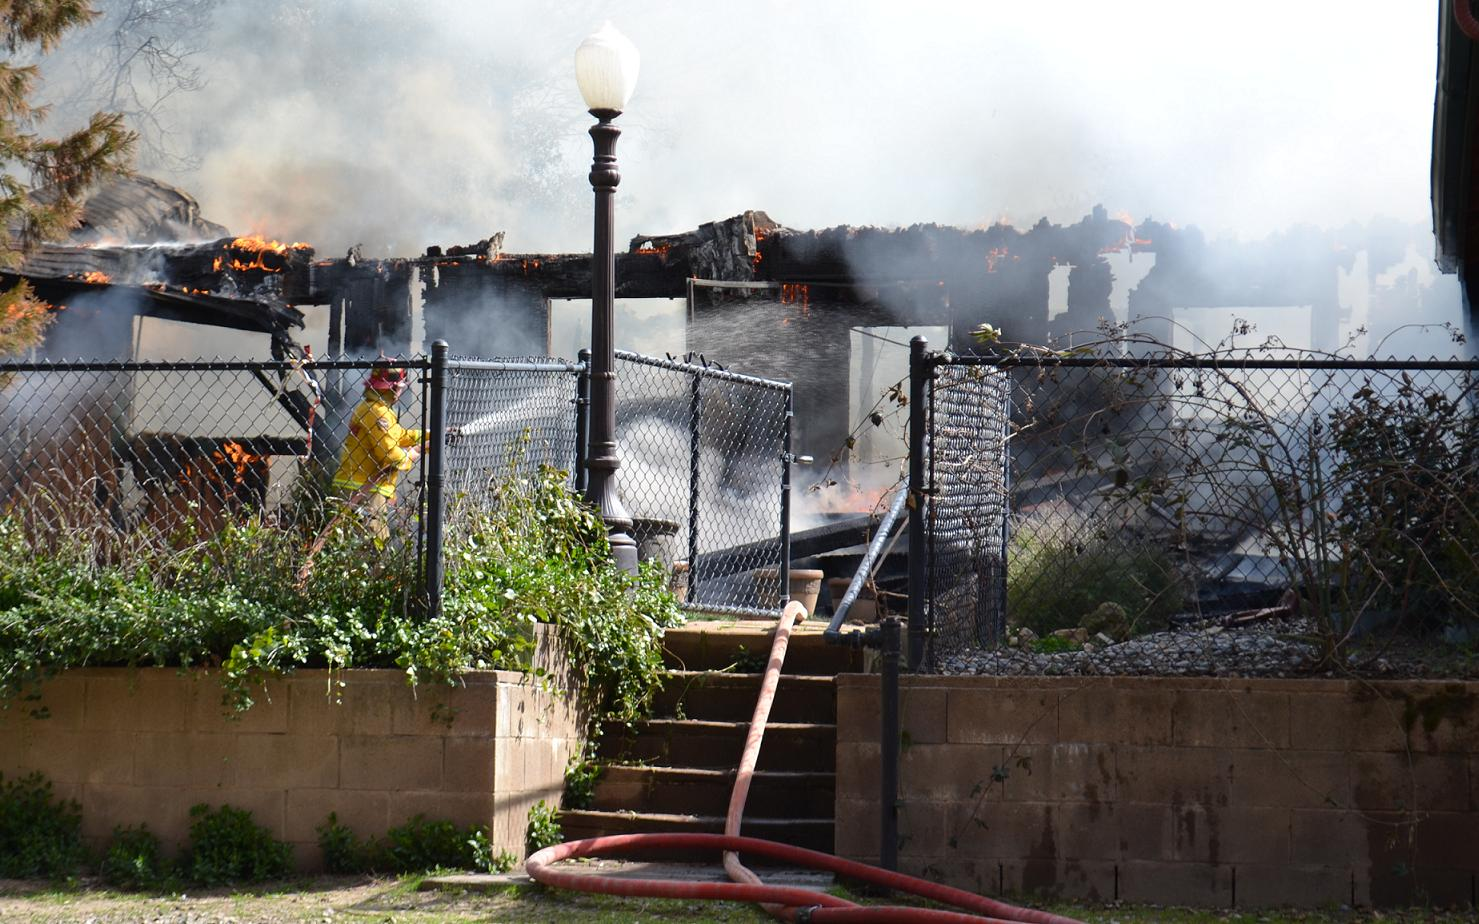 Firefighter hoses down whats left of the frame